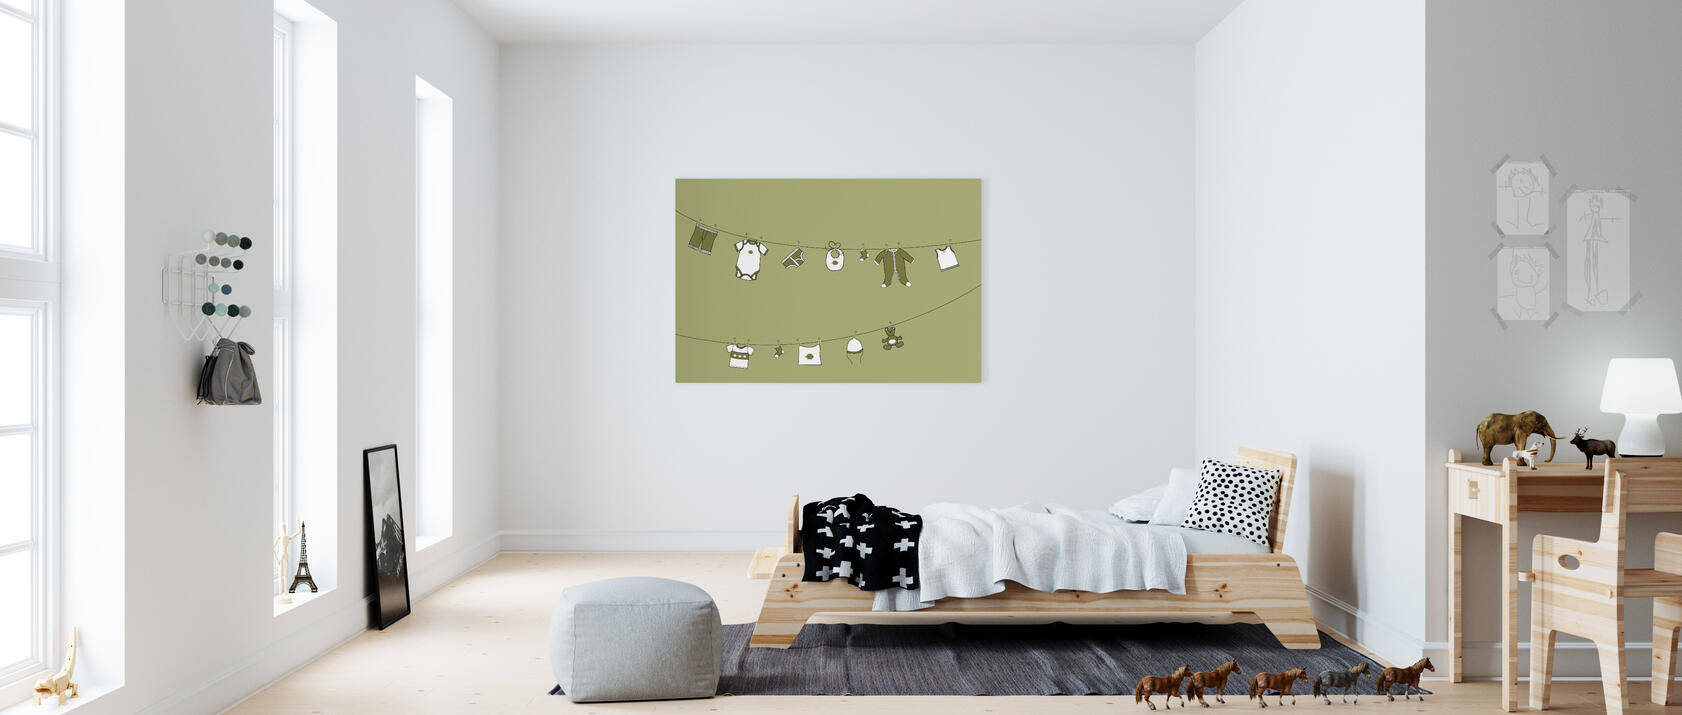 laundry olive impression sur toile en ligne pas cher photowall. Black Bedroom Furniture Sets. Home Design Ideas